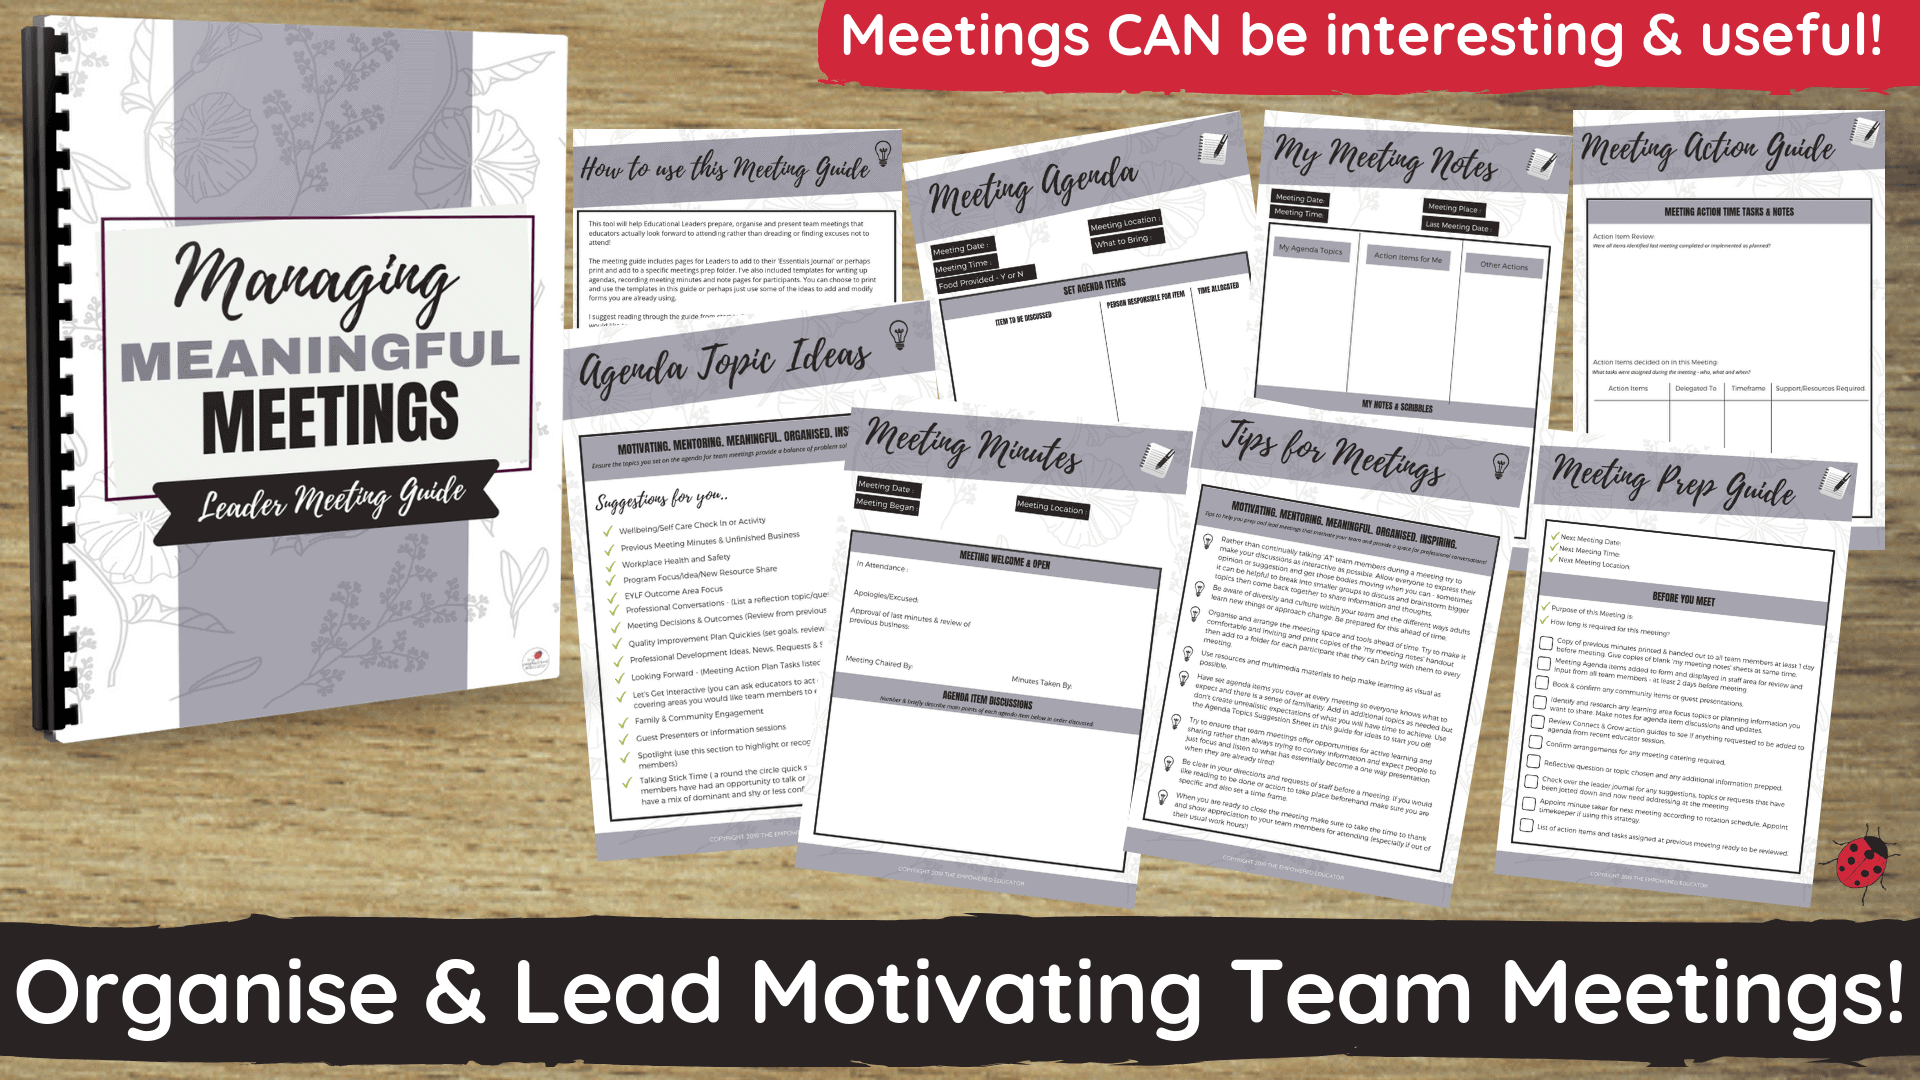 how to run meetings guide for early childhood educators,teachers and leaders!